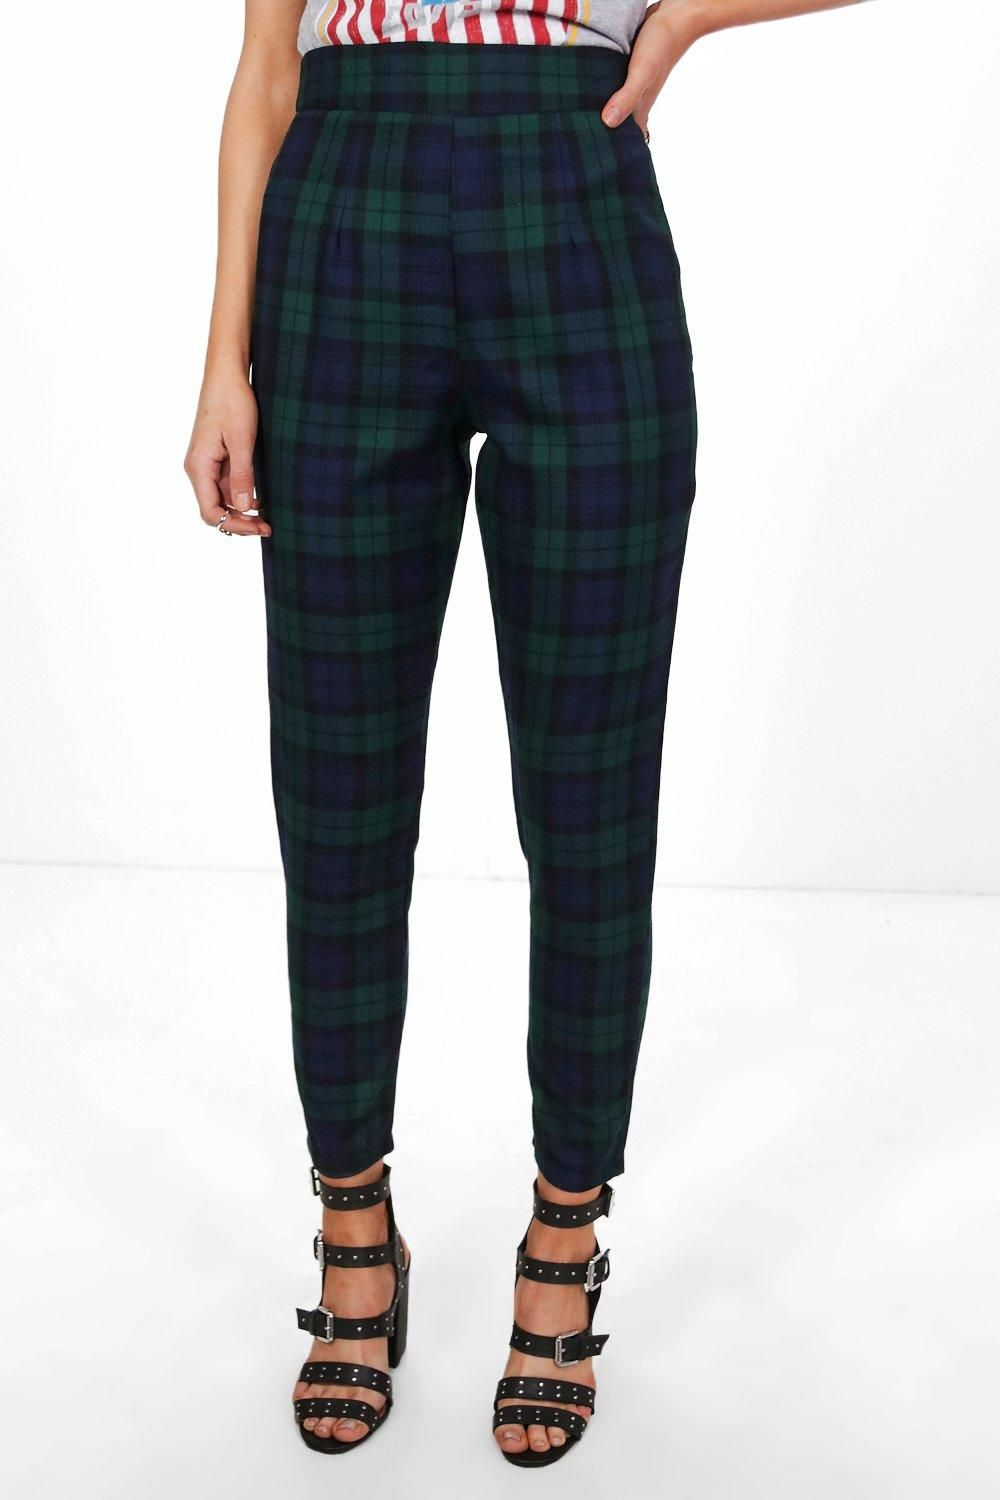 Boohoo Petite High Waisted Check Tapered Trouser Buy Cheap Best Wholesale 2018 New For Sale Explore For Sale Online Shop Official Cheap Online WlkgN